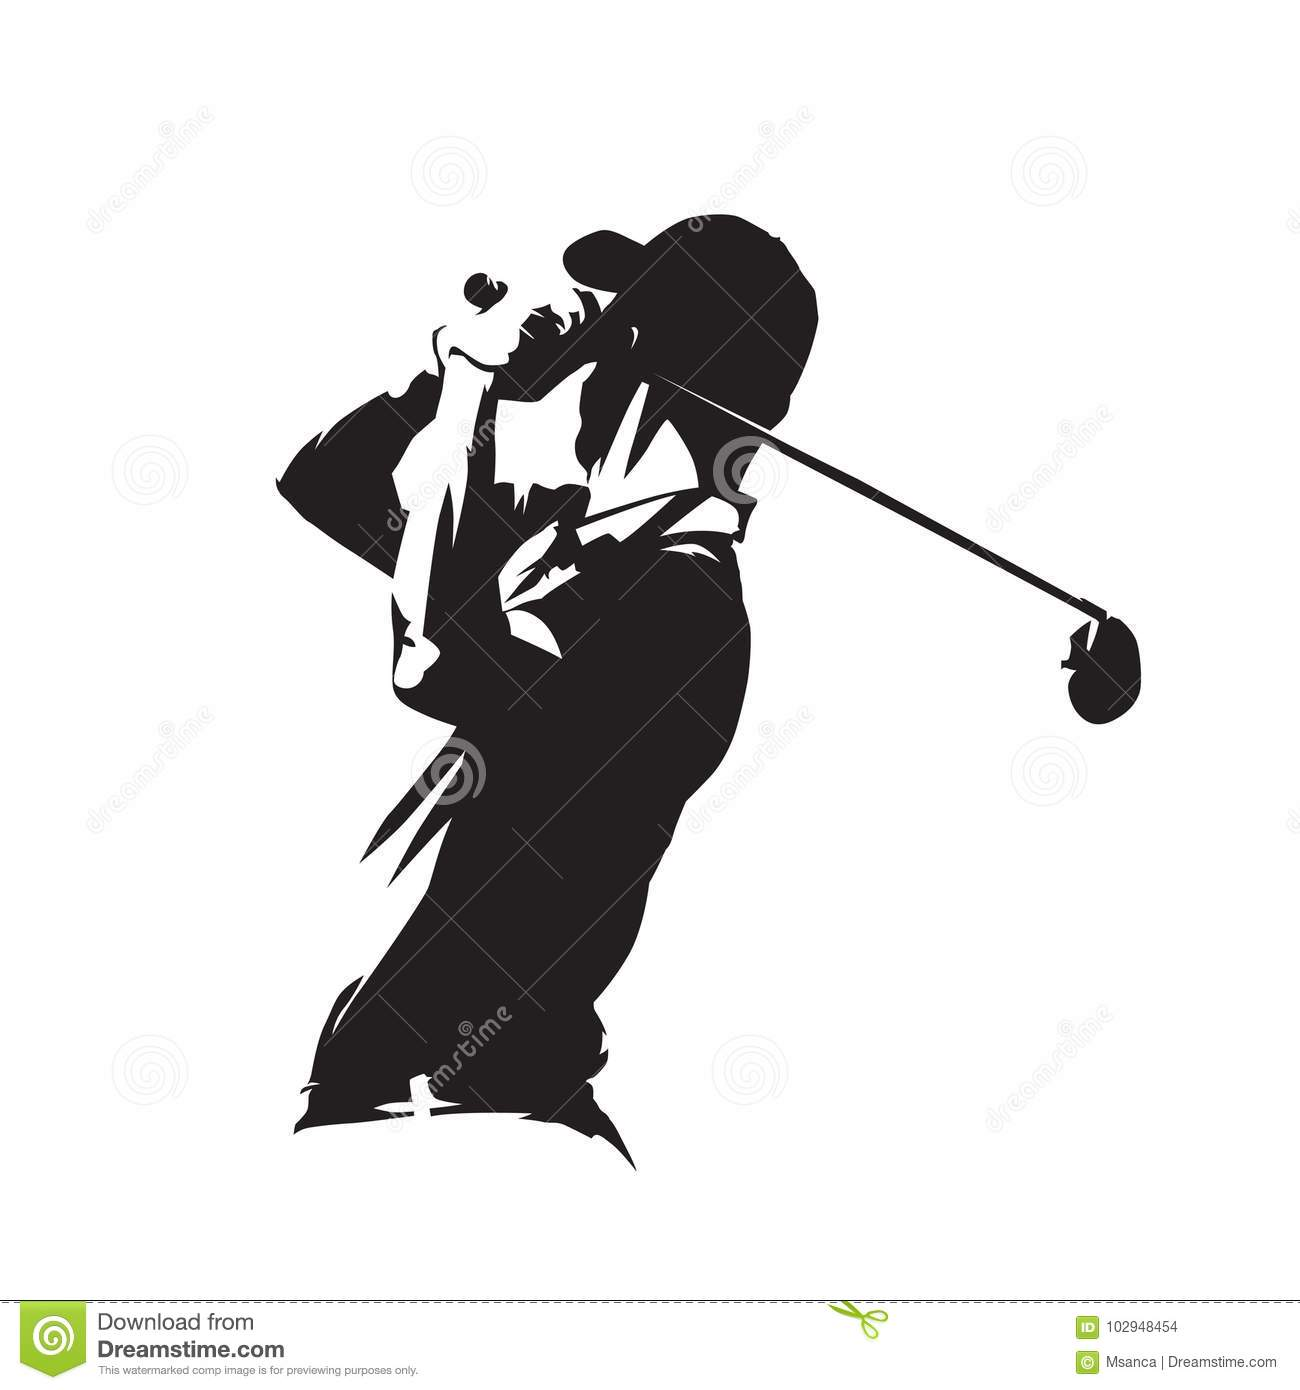 Golf player icon, golfer vector silhouette